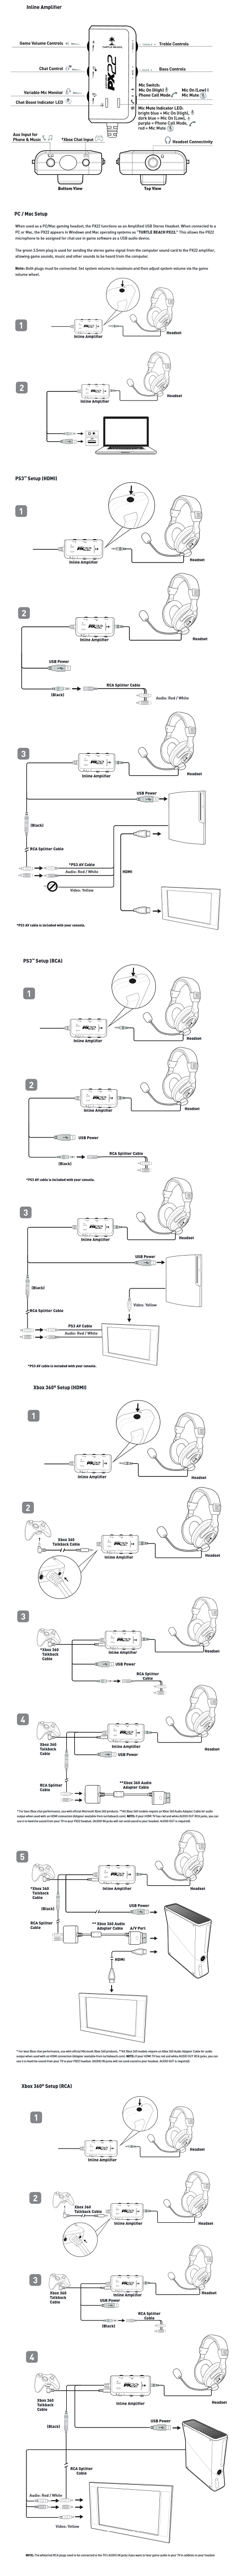 PX22_SETUP turtle beach px22 wiring diagram how to rewire turtle beach Ear Force PX21 at alyssarenee.co